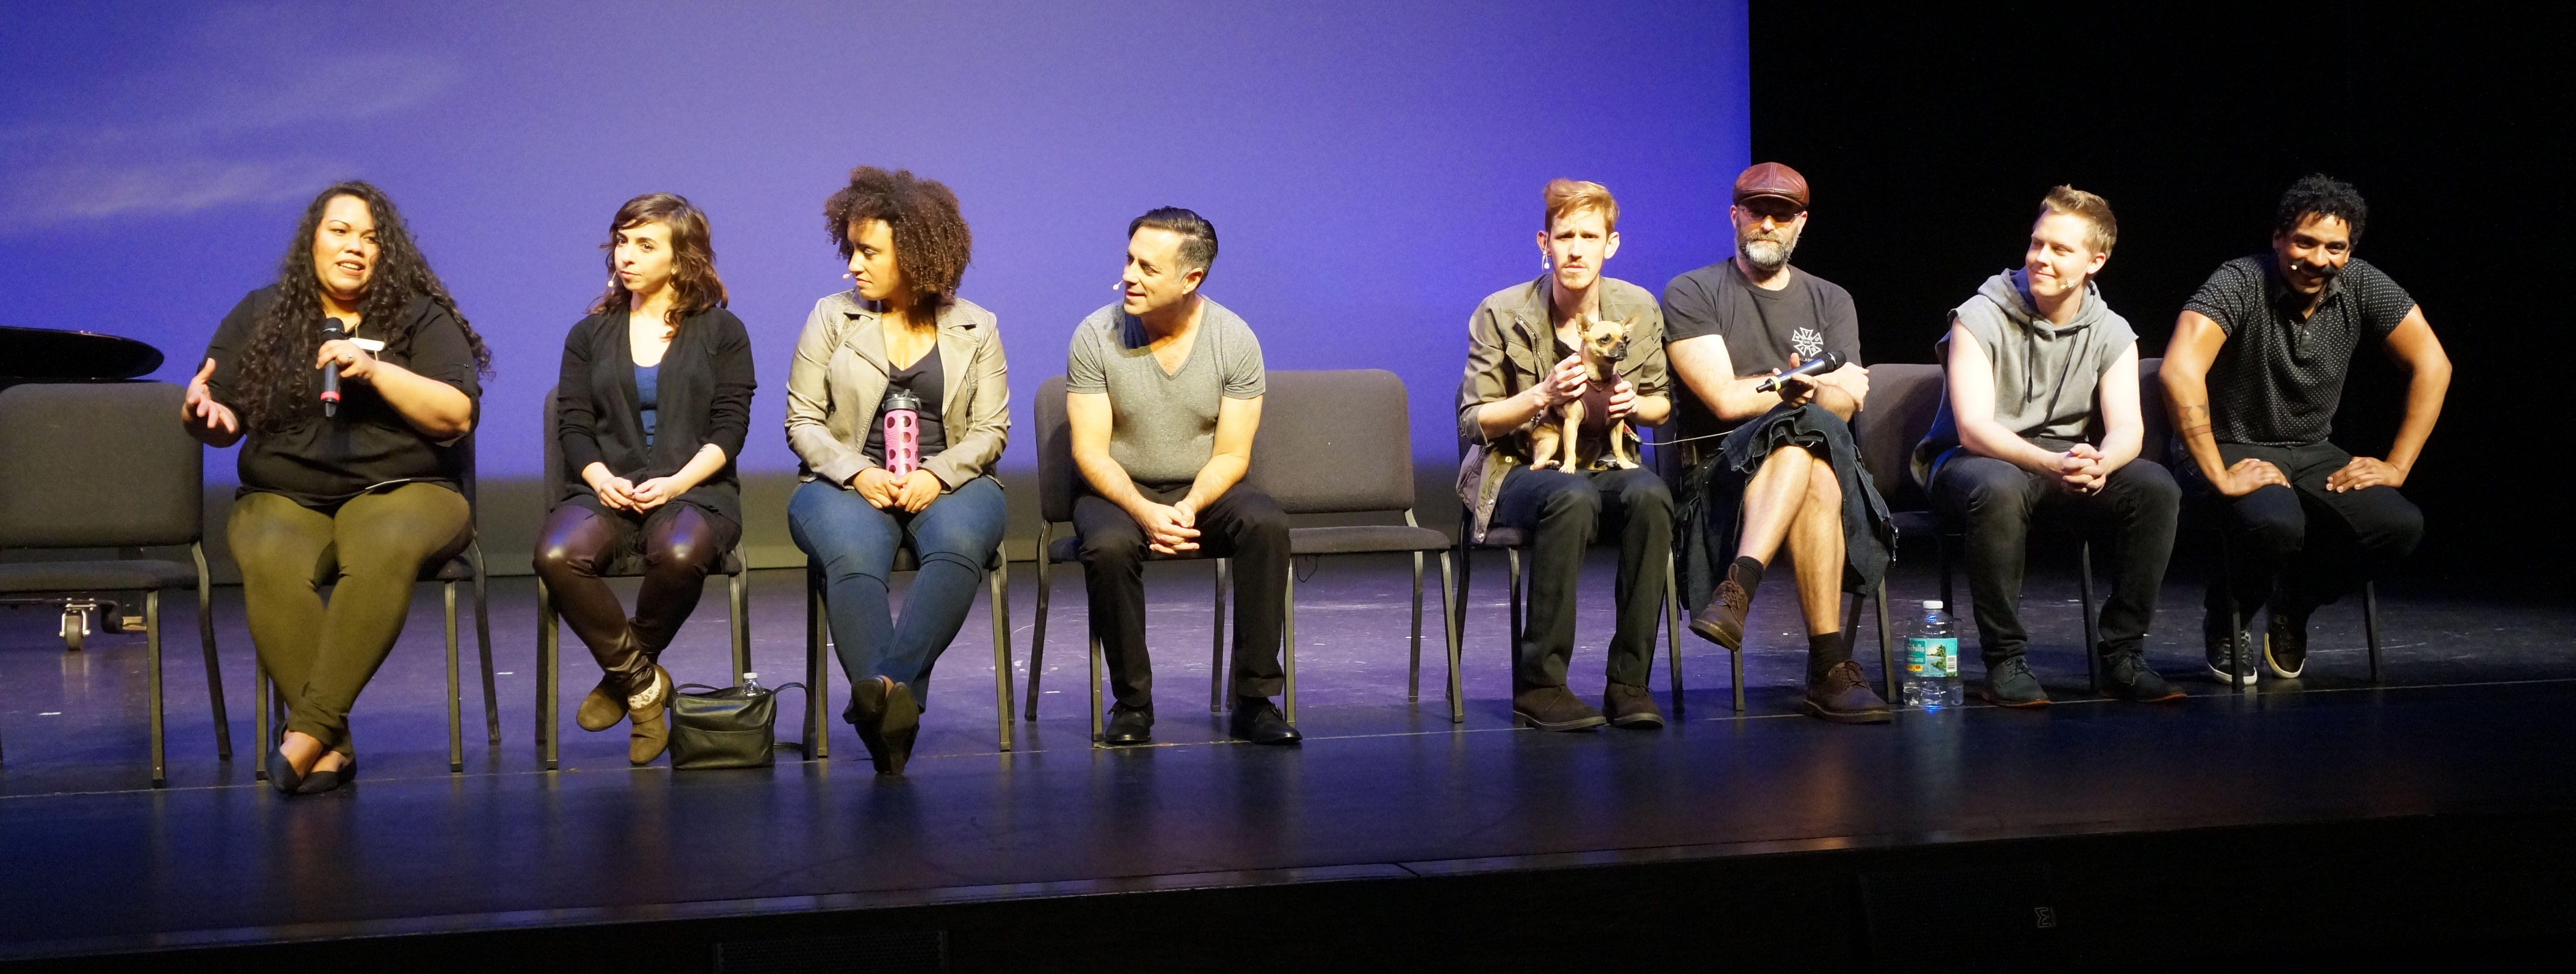 BWW Review: IT GETS BETTER SHARES MESSAGE OF HOPE at The Straz Center For The Performing Arts